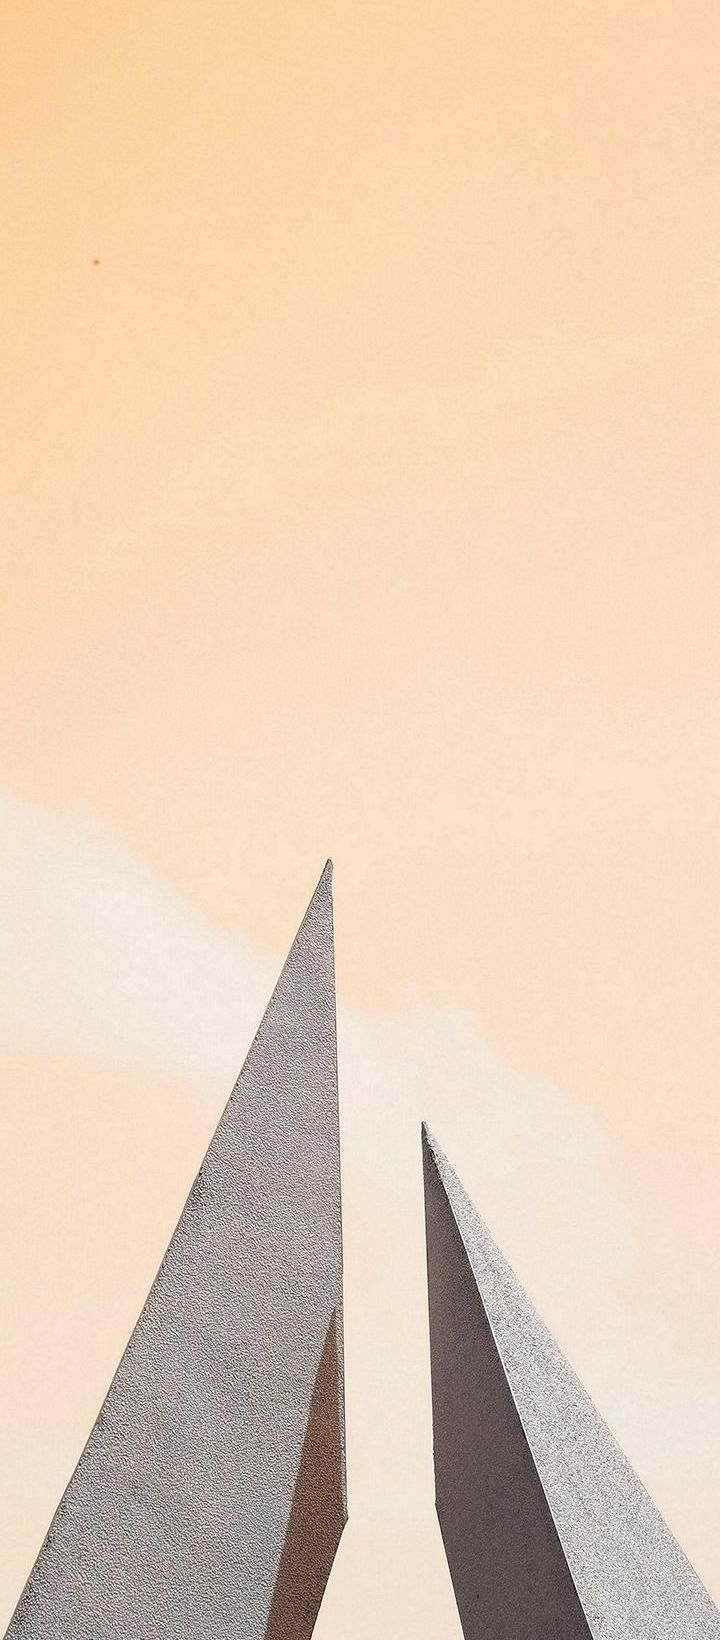 720x1640 Phone Wallpaper 229